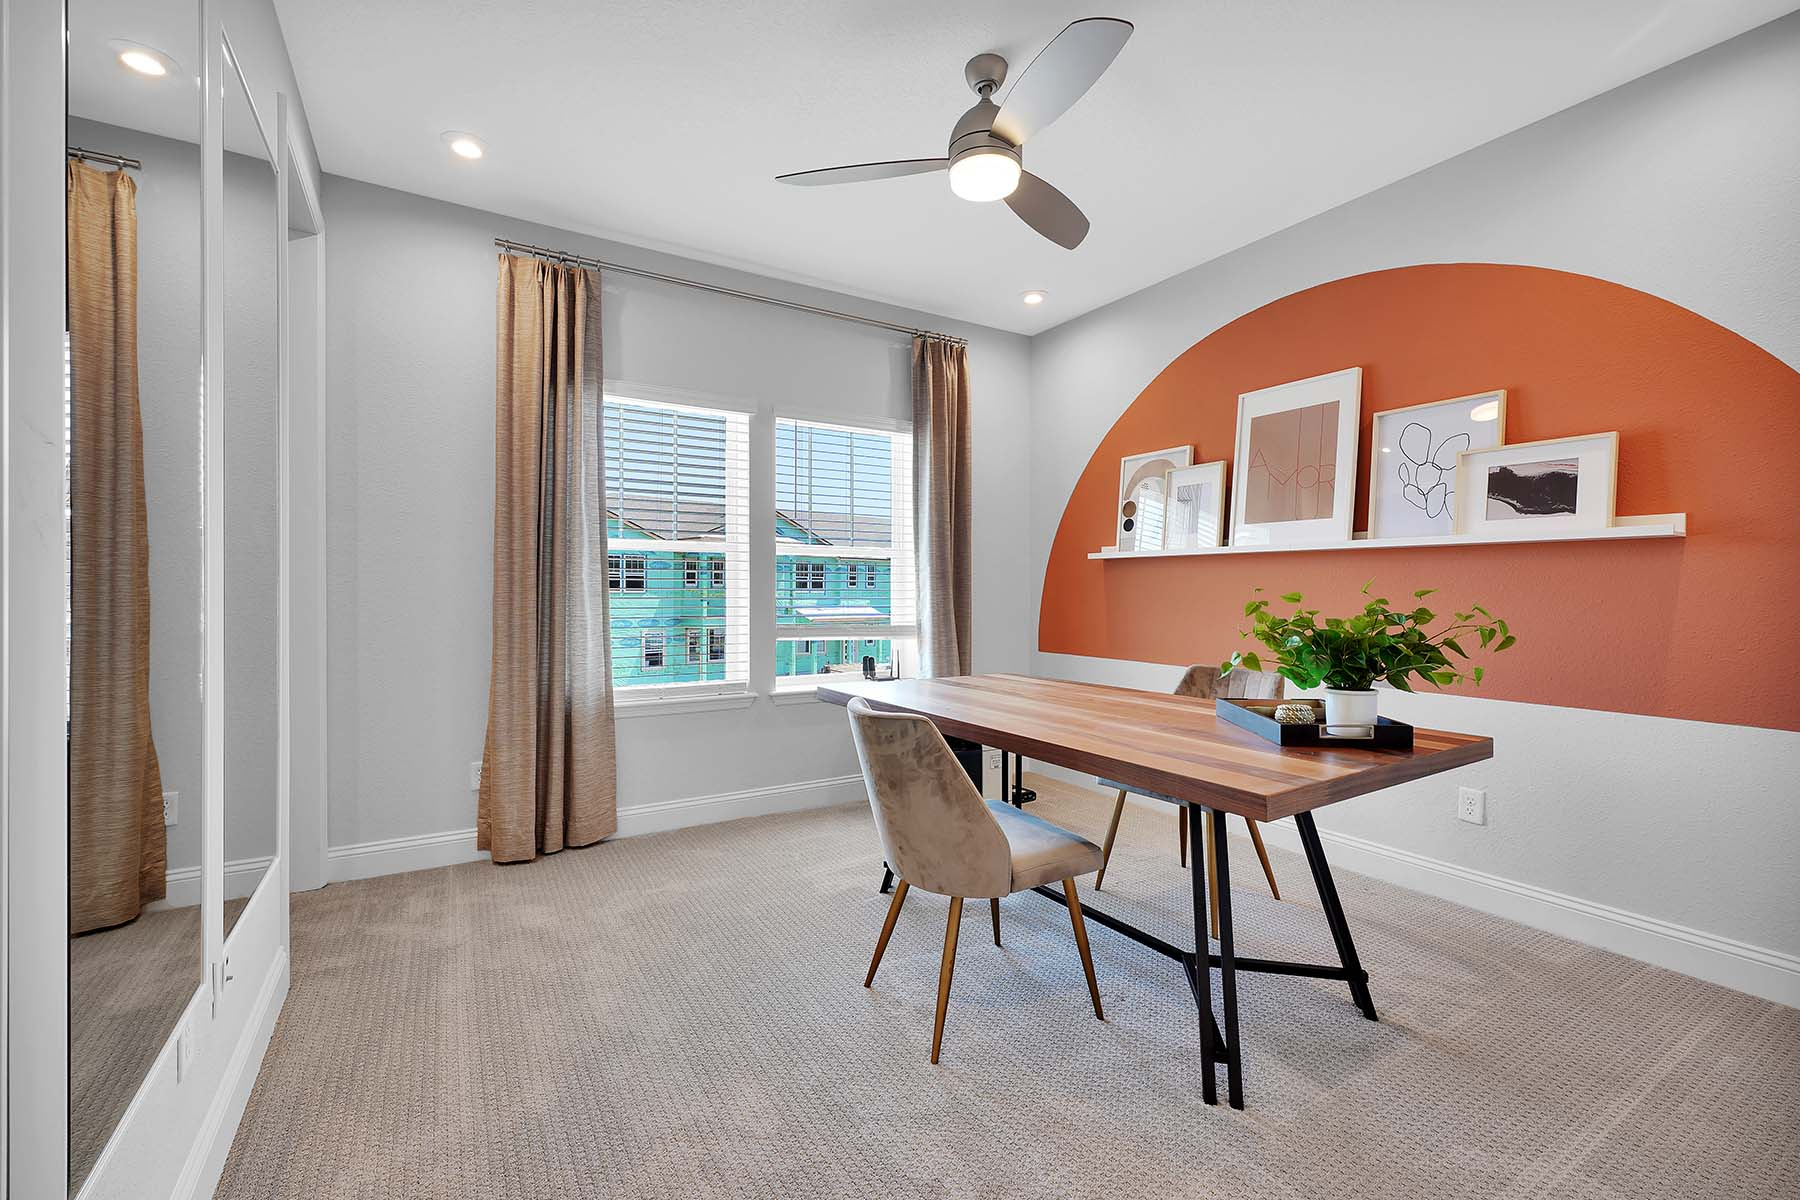 Waverly Plan Study Room at Pablo Cove in Jacksonville Florida by Mattamy Homes